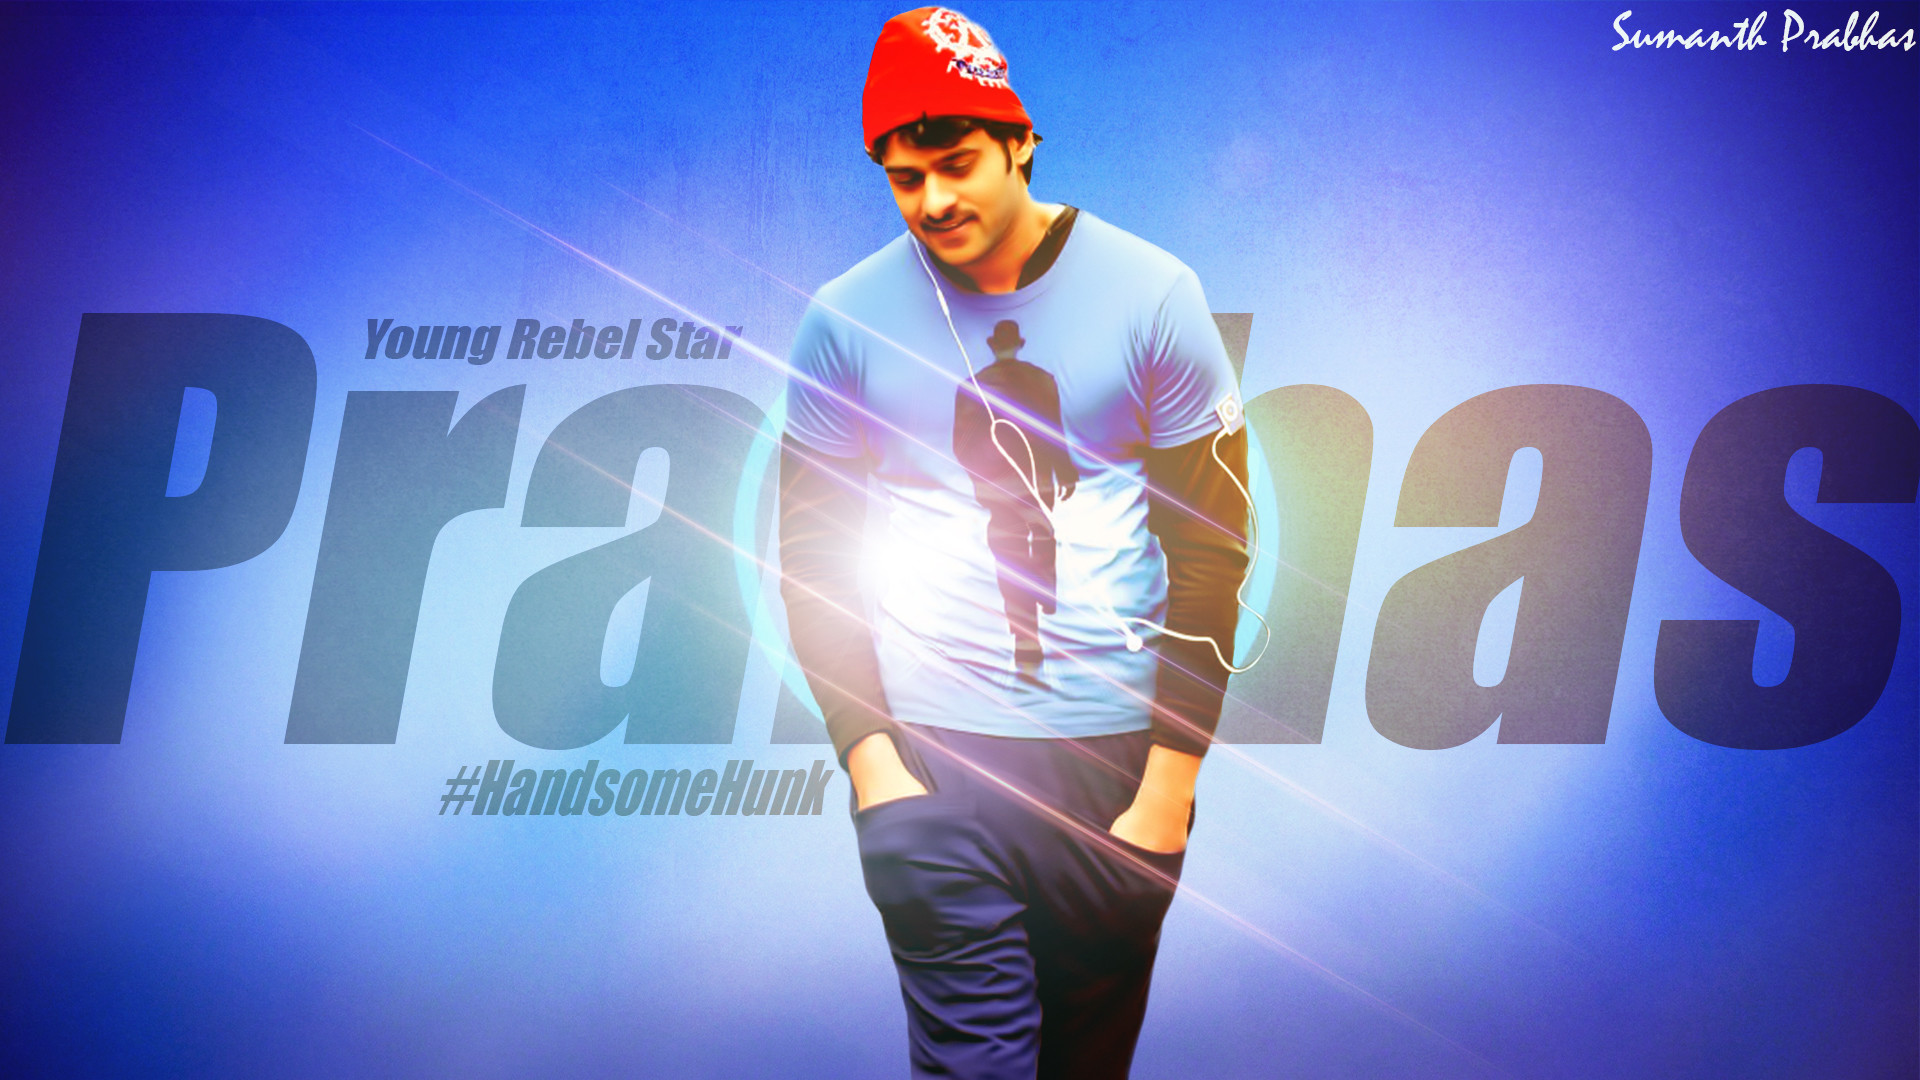 Res: 1920x1080, Handsome Hunk Darling Widescreen Wallpaper · Click Here For HD